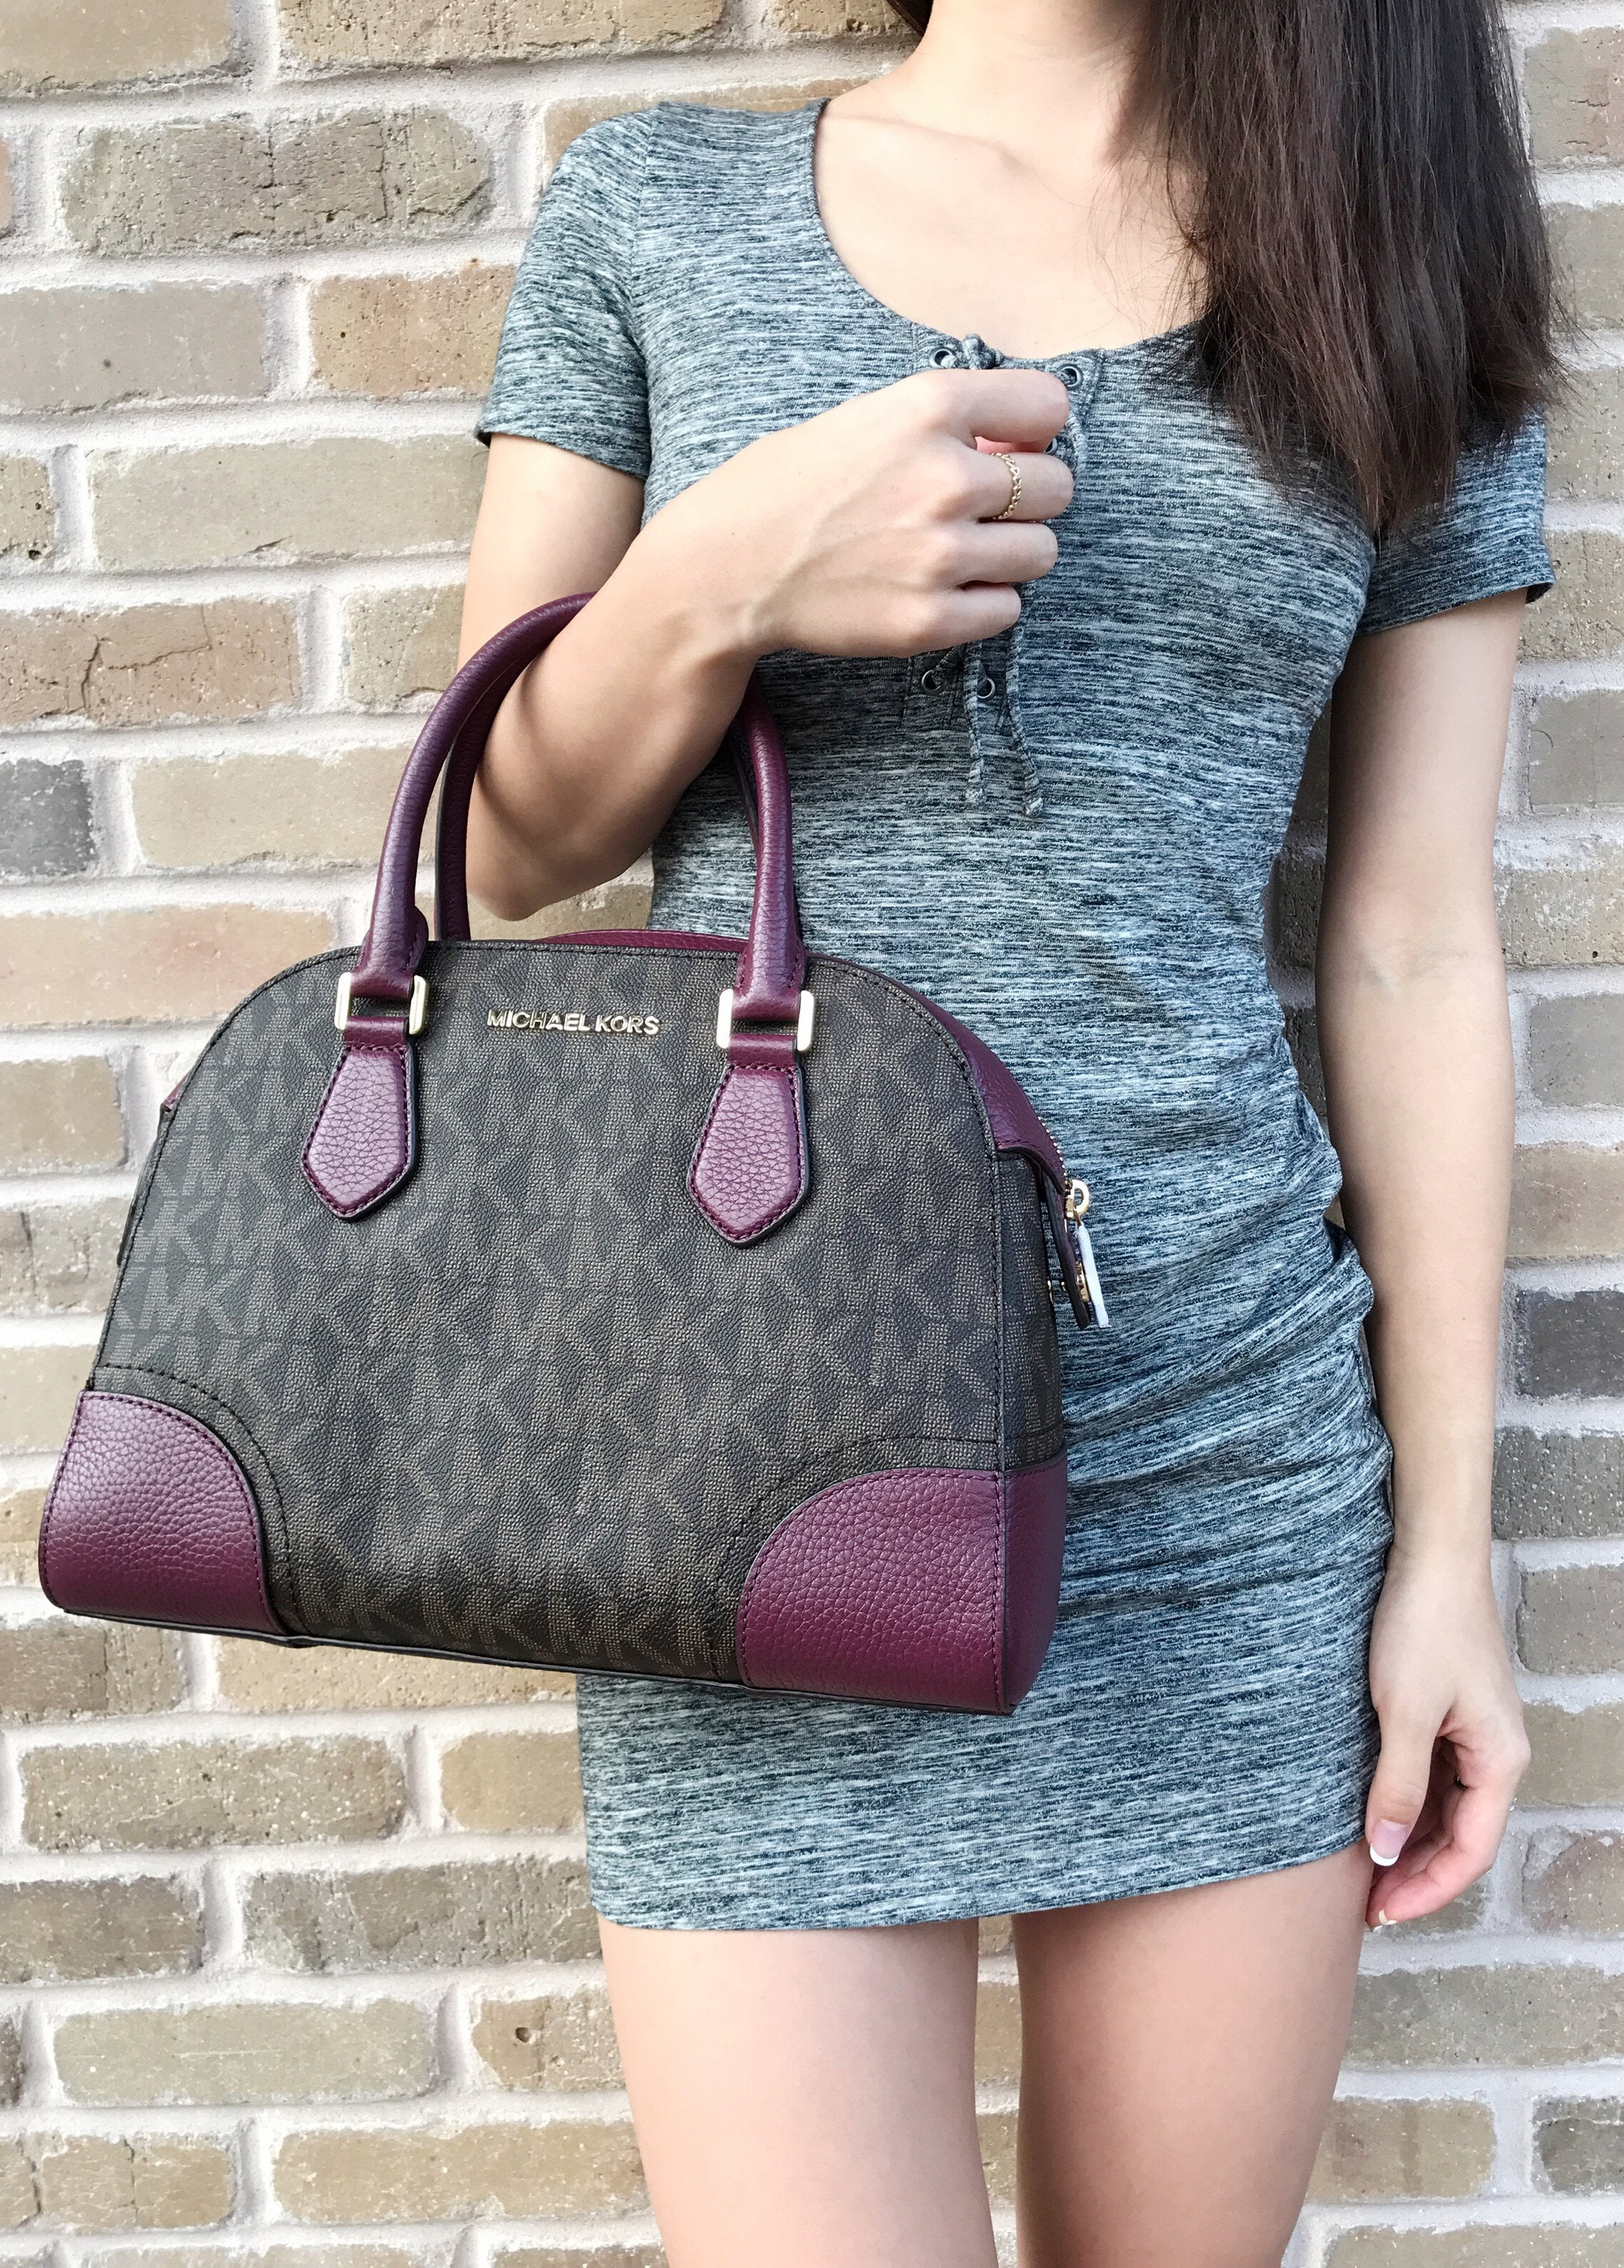 683e7f6f264a85 Michael Kors - Michael Kors Hattie MK Signature Bowling Satchel Bag Brown  Plum Crossbody - Walmart.com